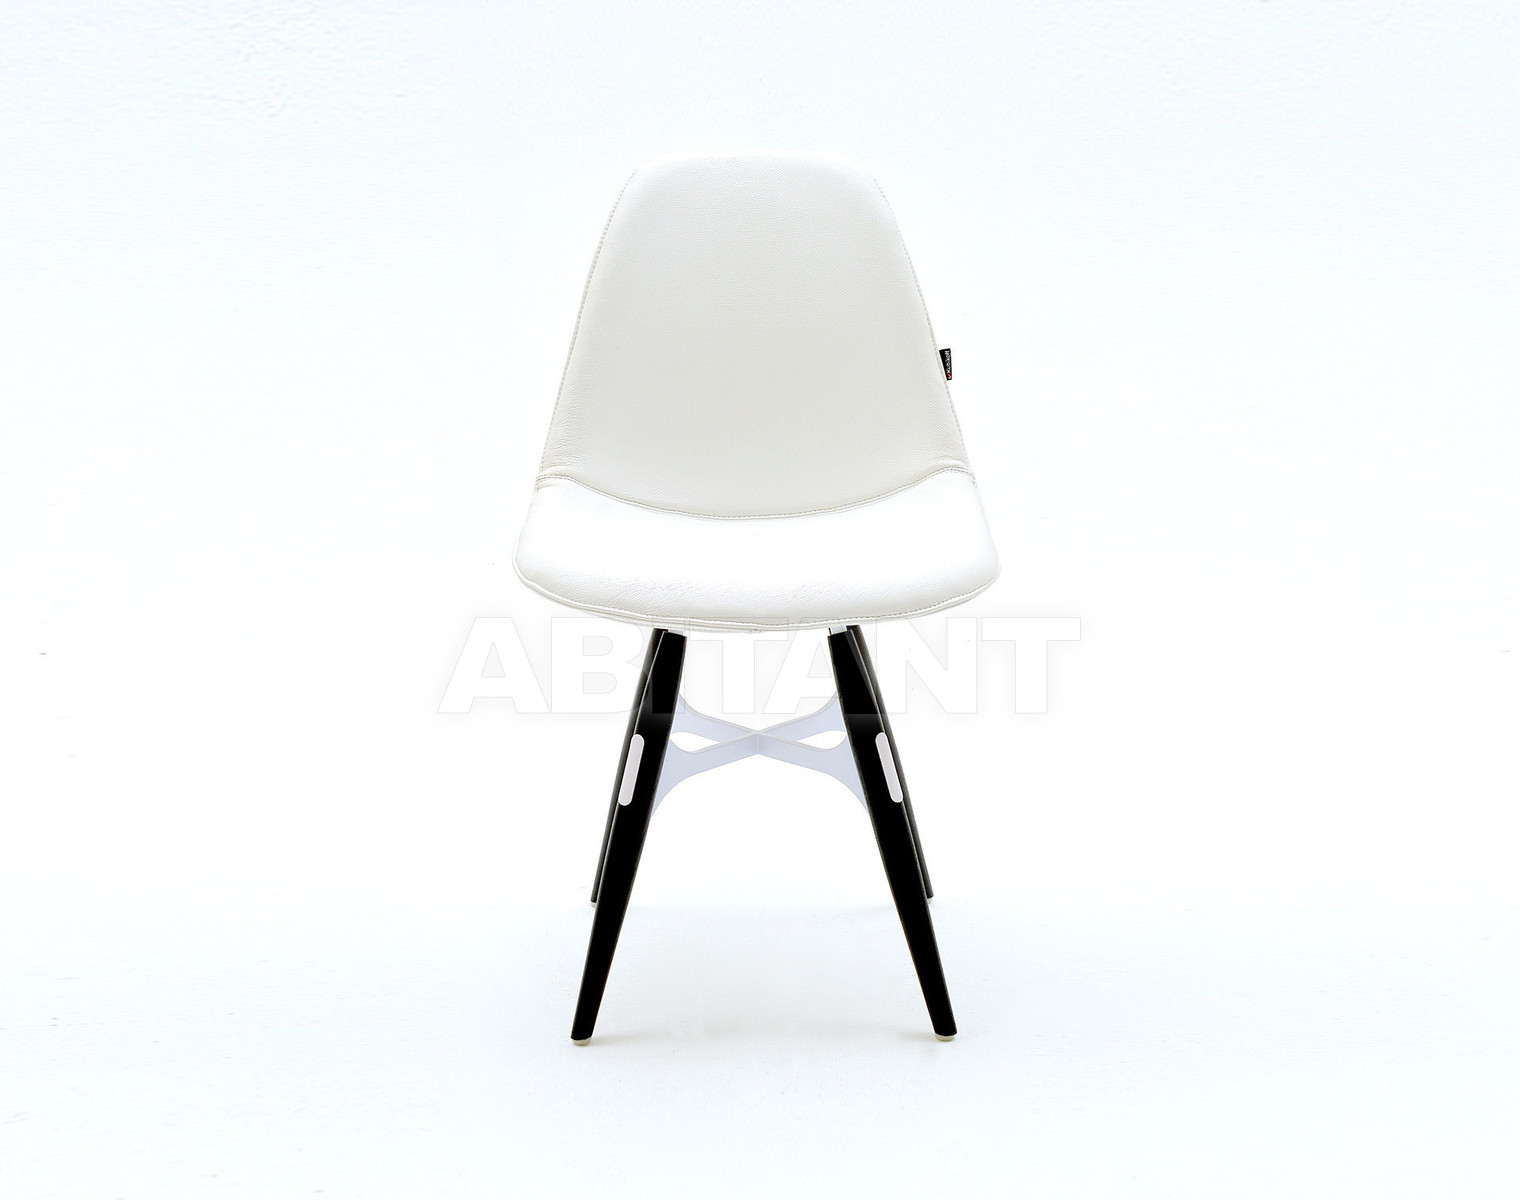 Купить Стул Kubikoff Sander Mulder ZigZag'POP'Chair' 03